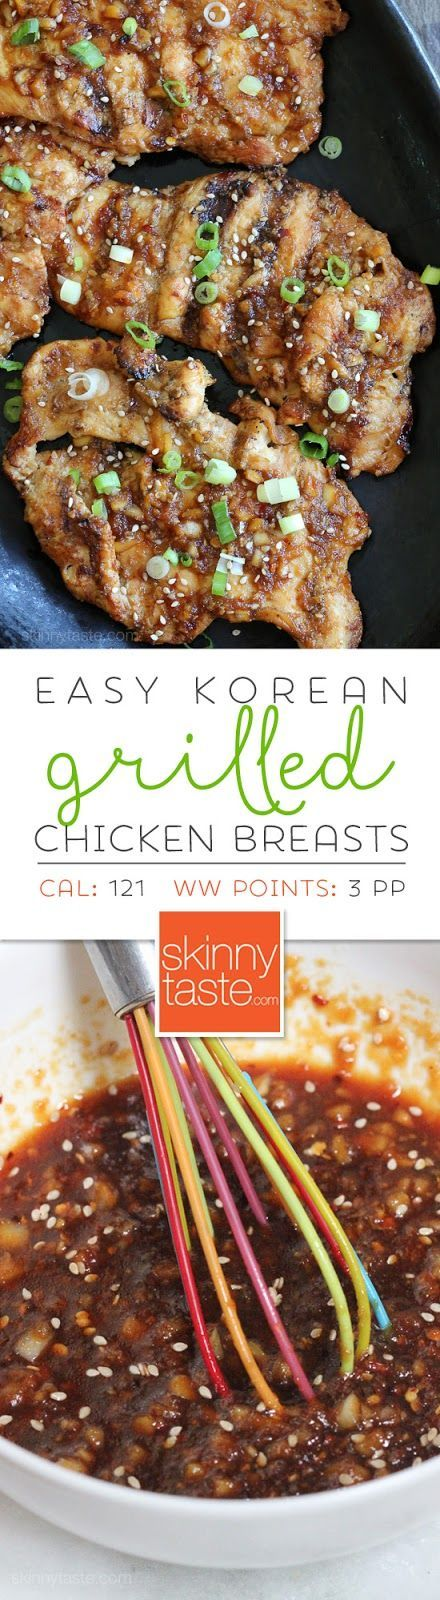 Korean Grilled Chicken Breasts More Chicken Breast Korean Grilled Chicken Breasts – juiciest, most flavorful chicken breasts youll ever make! #coupon code nicesup123 gets 25% off at www.Provestra.com www.Skinception.com and www.leadingedgehealth.com